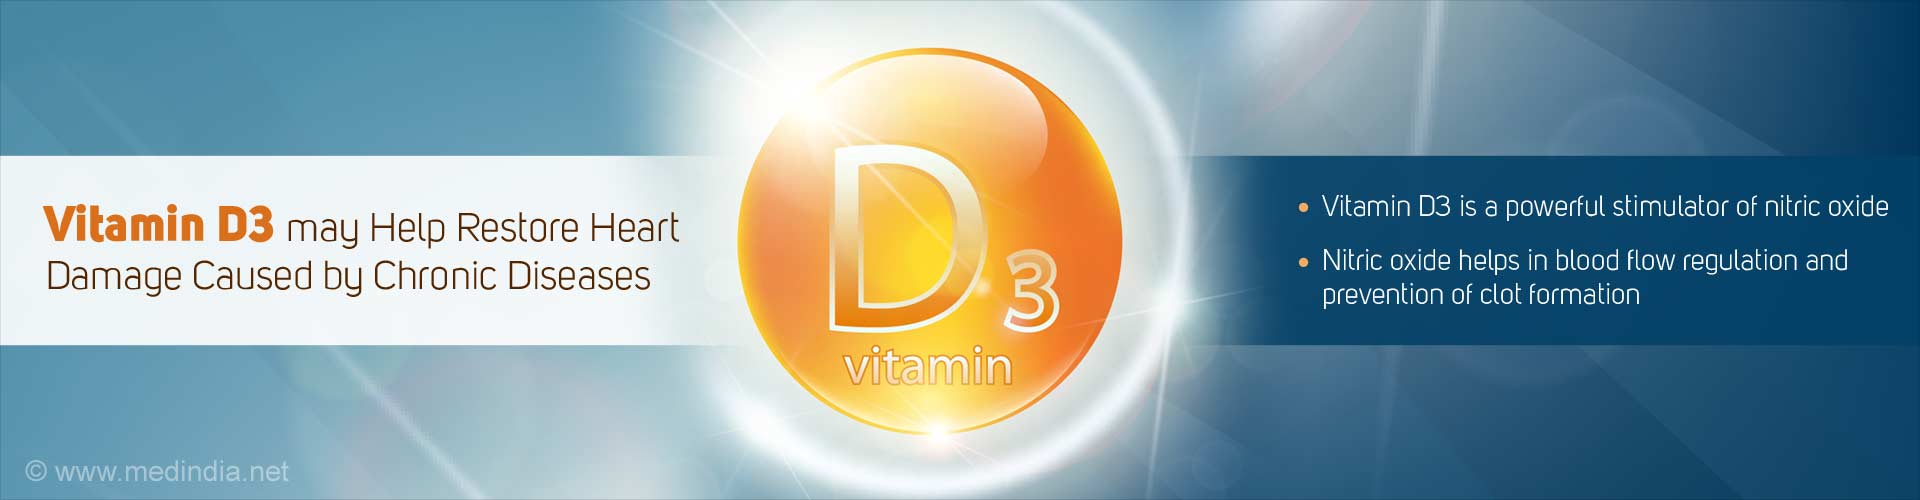 vitamin D3 may help restore heart damage caused by chronic diseases - vitamin D3 is a powerful stimulator of nitric oxide - nitric oxide helps in blood flow regulation and prevention of clot formation